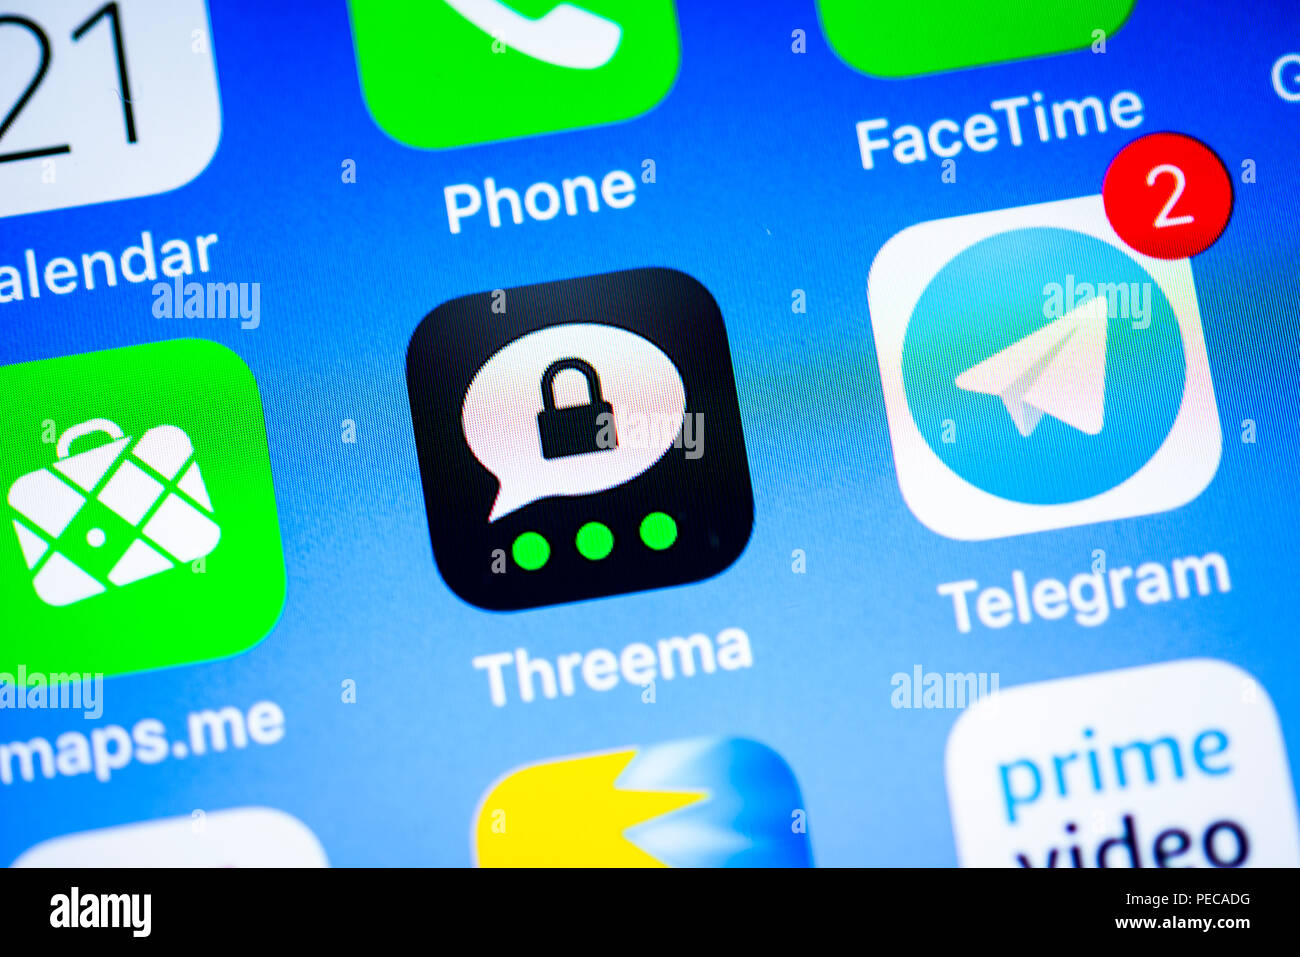 Threema, secure Instant Messenger App, app icon, display, iPhone, iOS, smartphone, display, close-up, detail, Germany - Stock Image